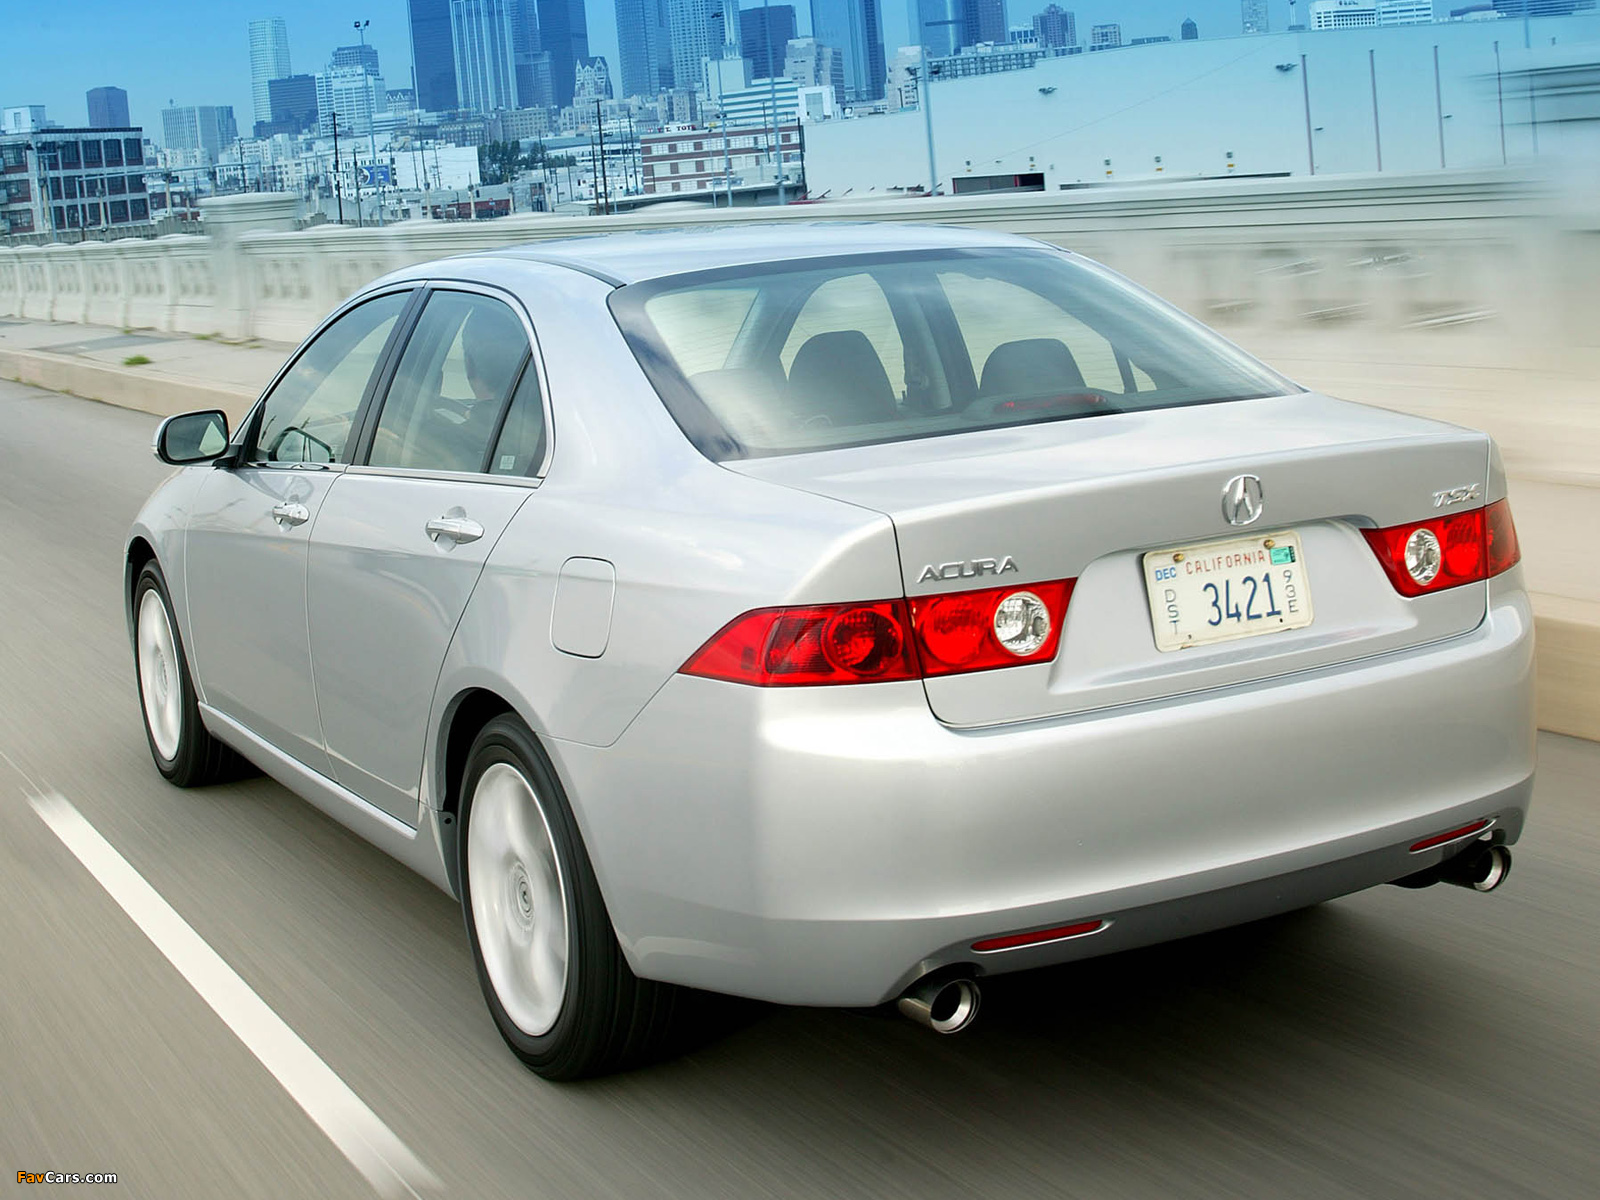 acura tsx 2003 images